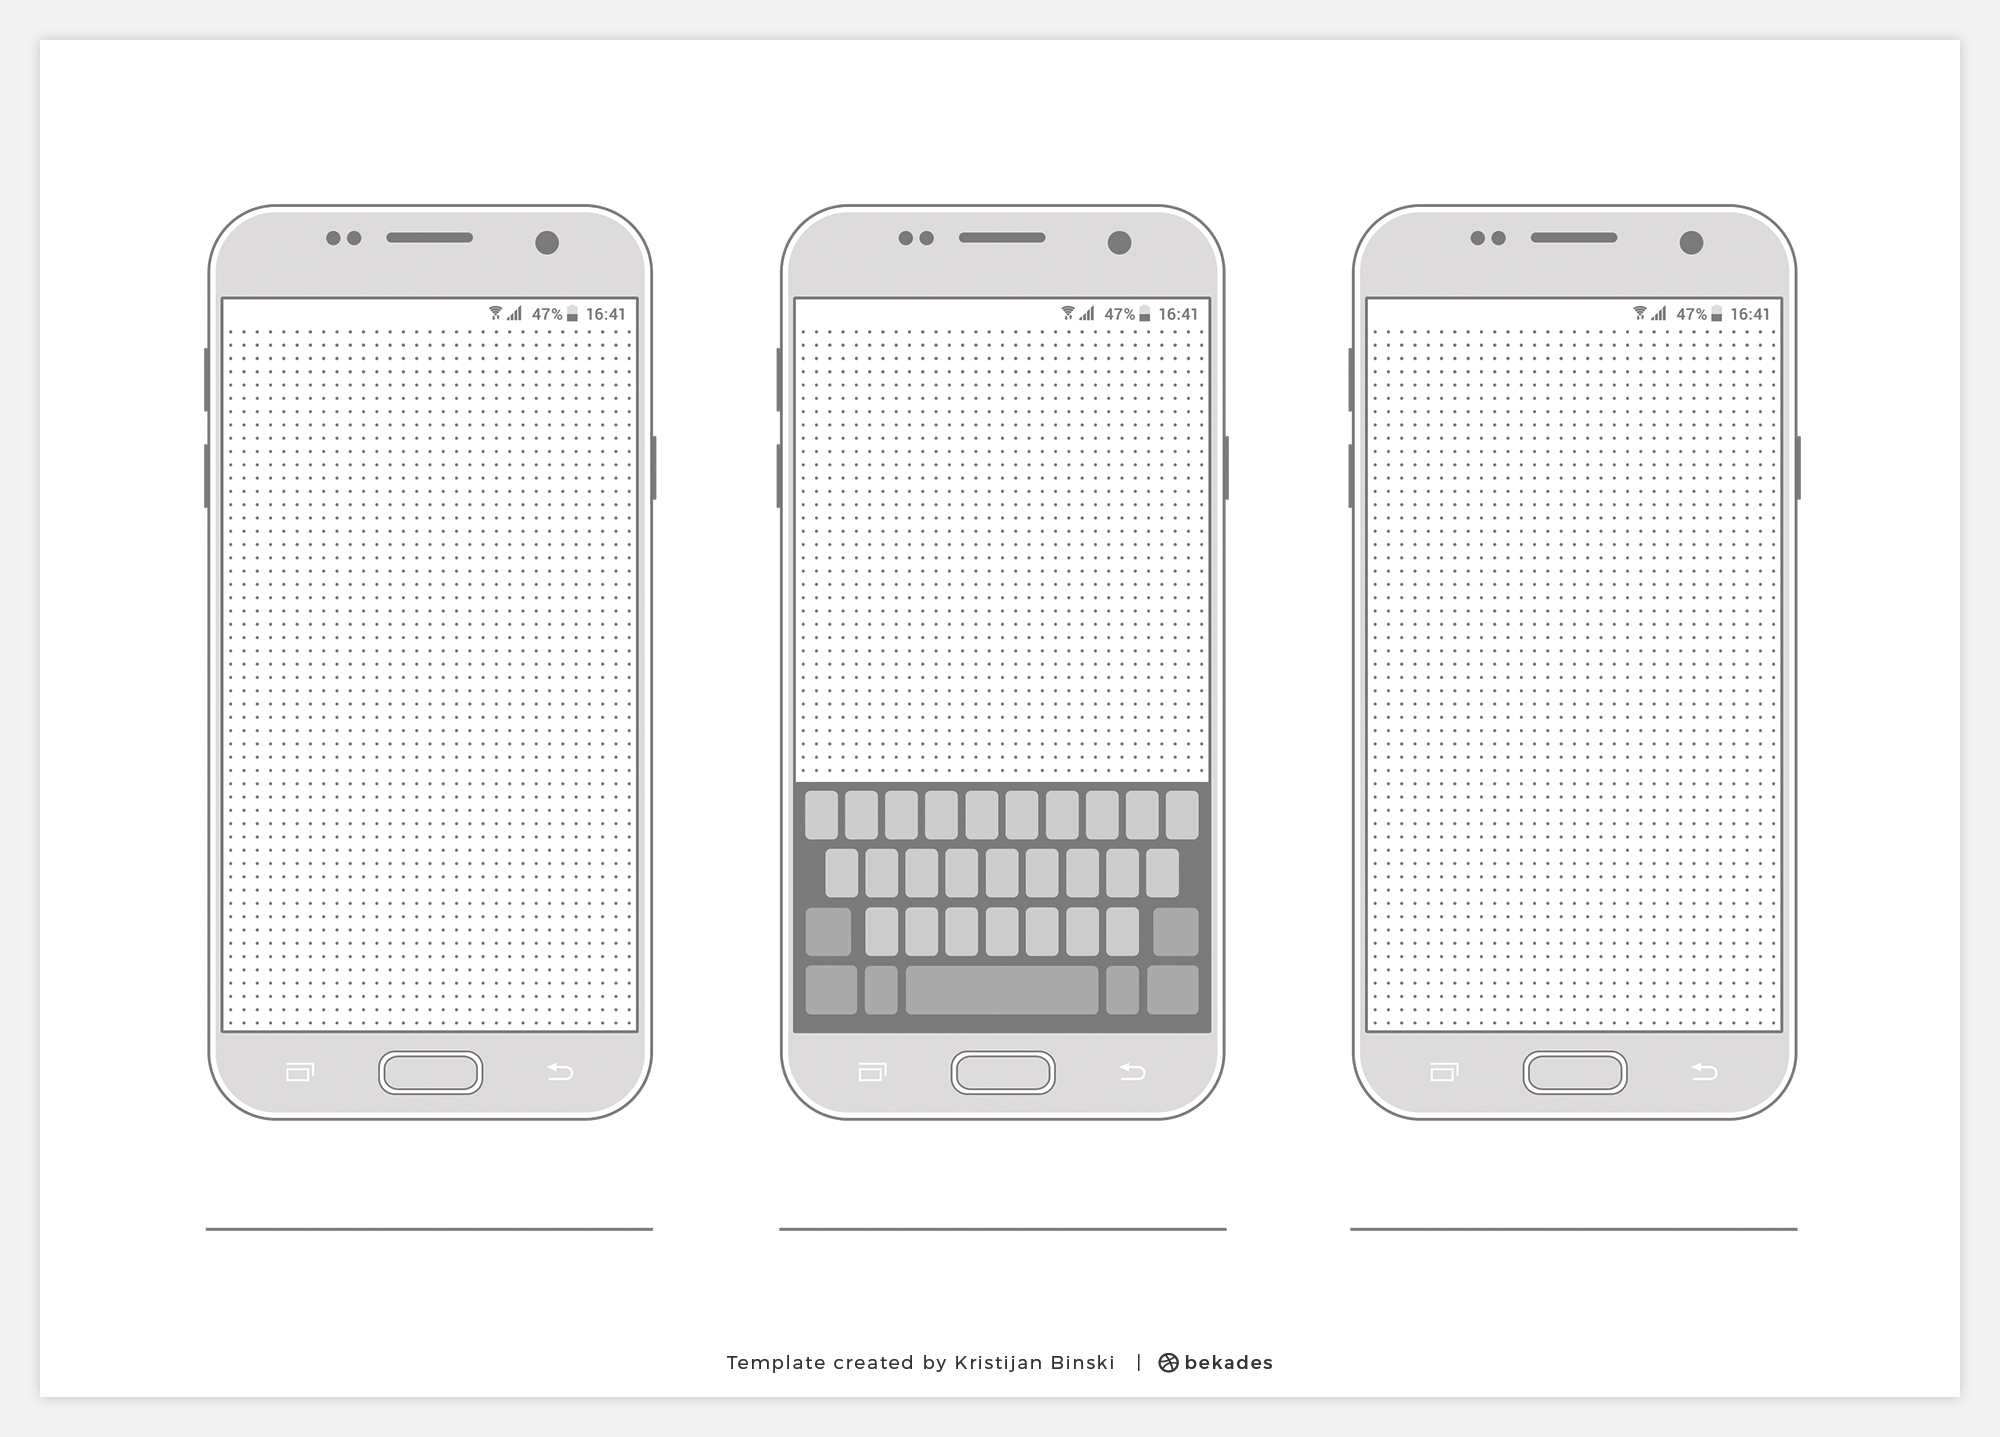 Samsung S7 Printable Wireframe Template with Keyboard for PSD and PNG